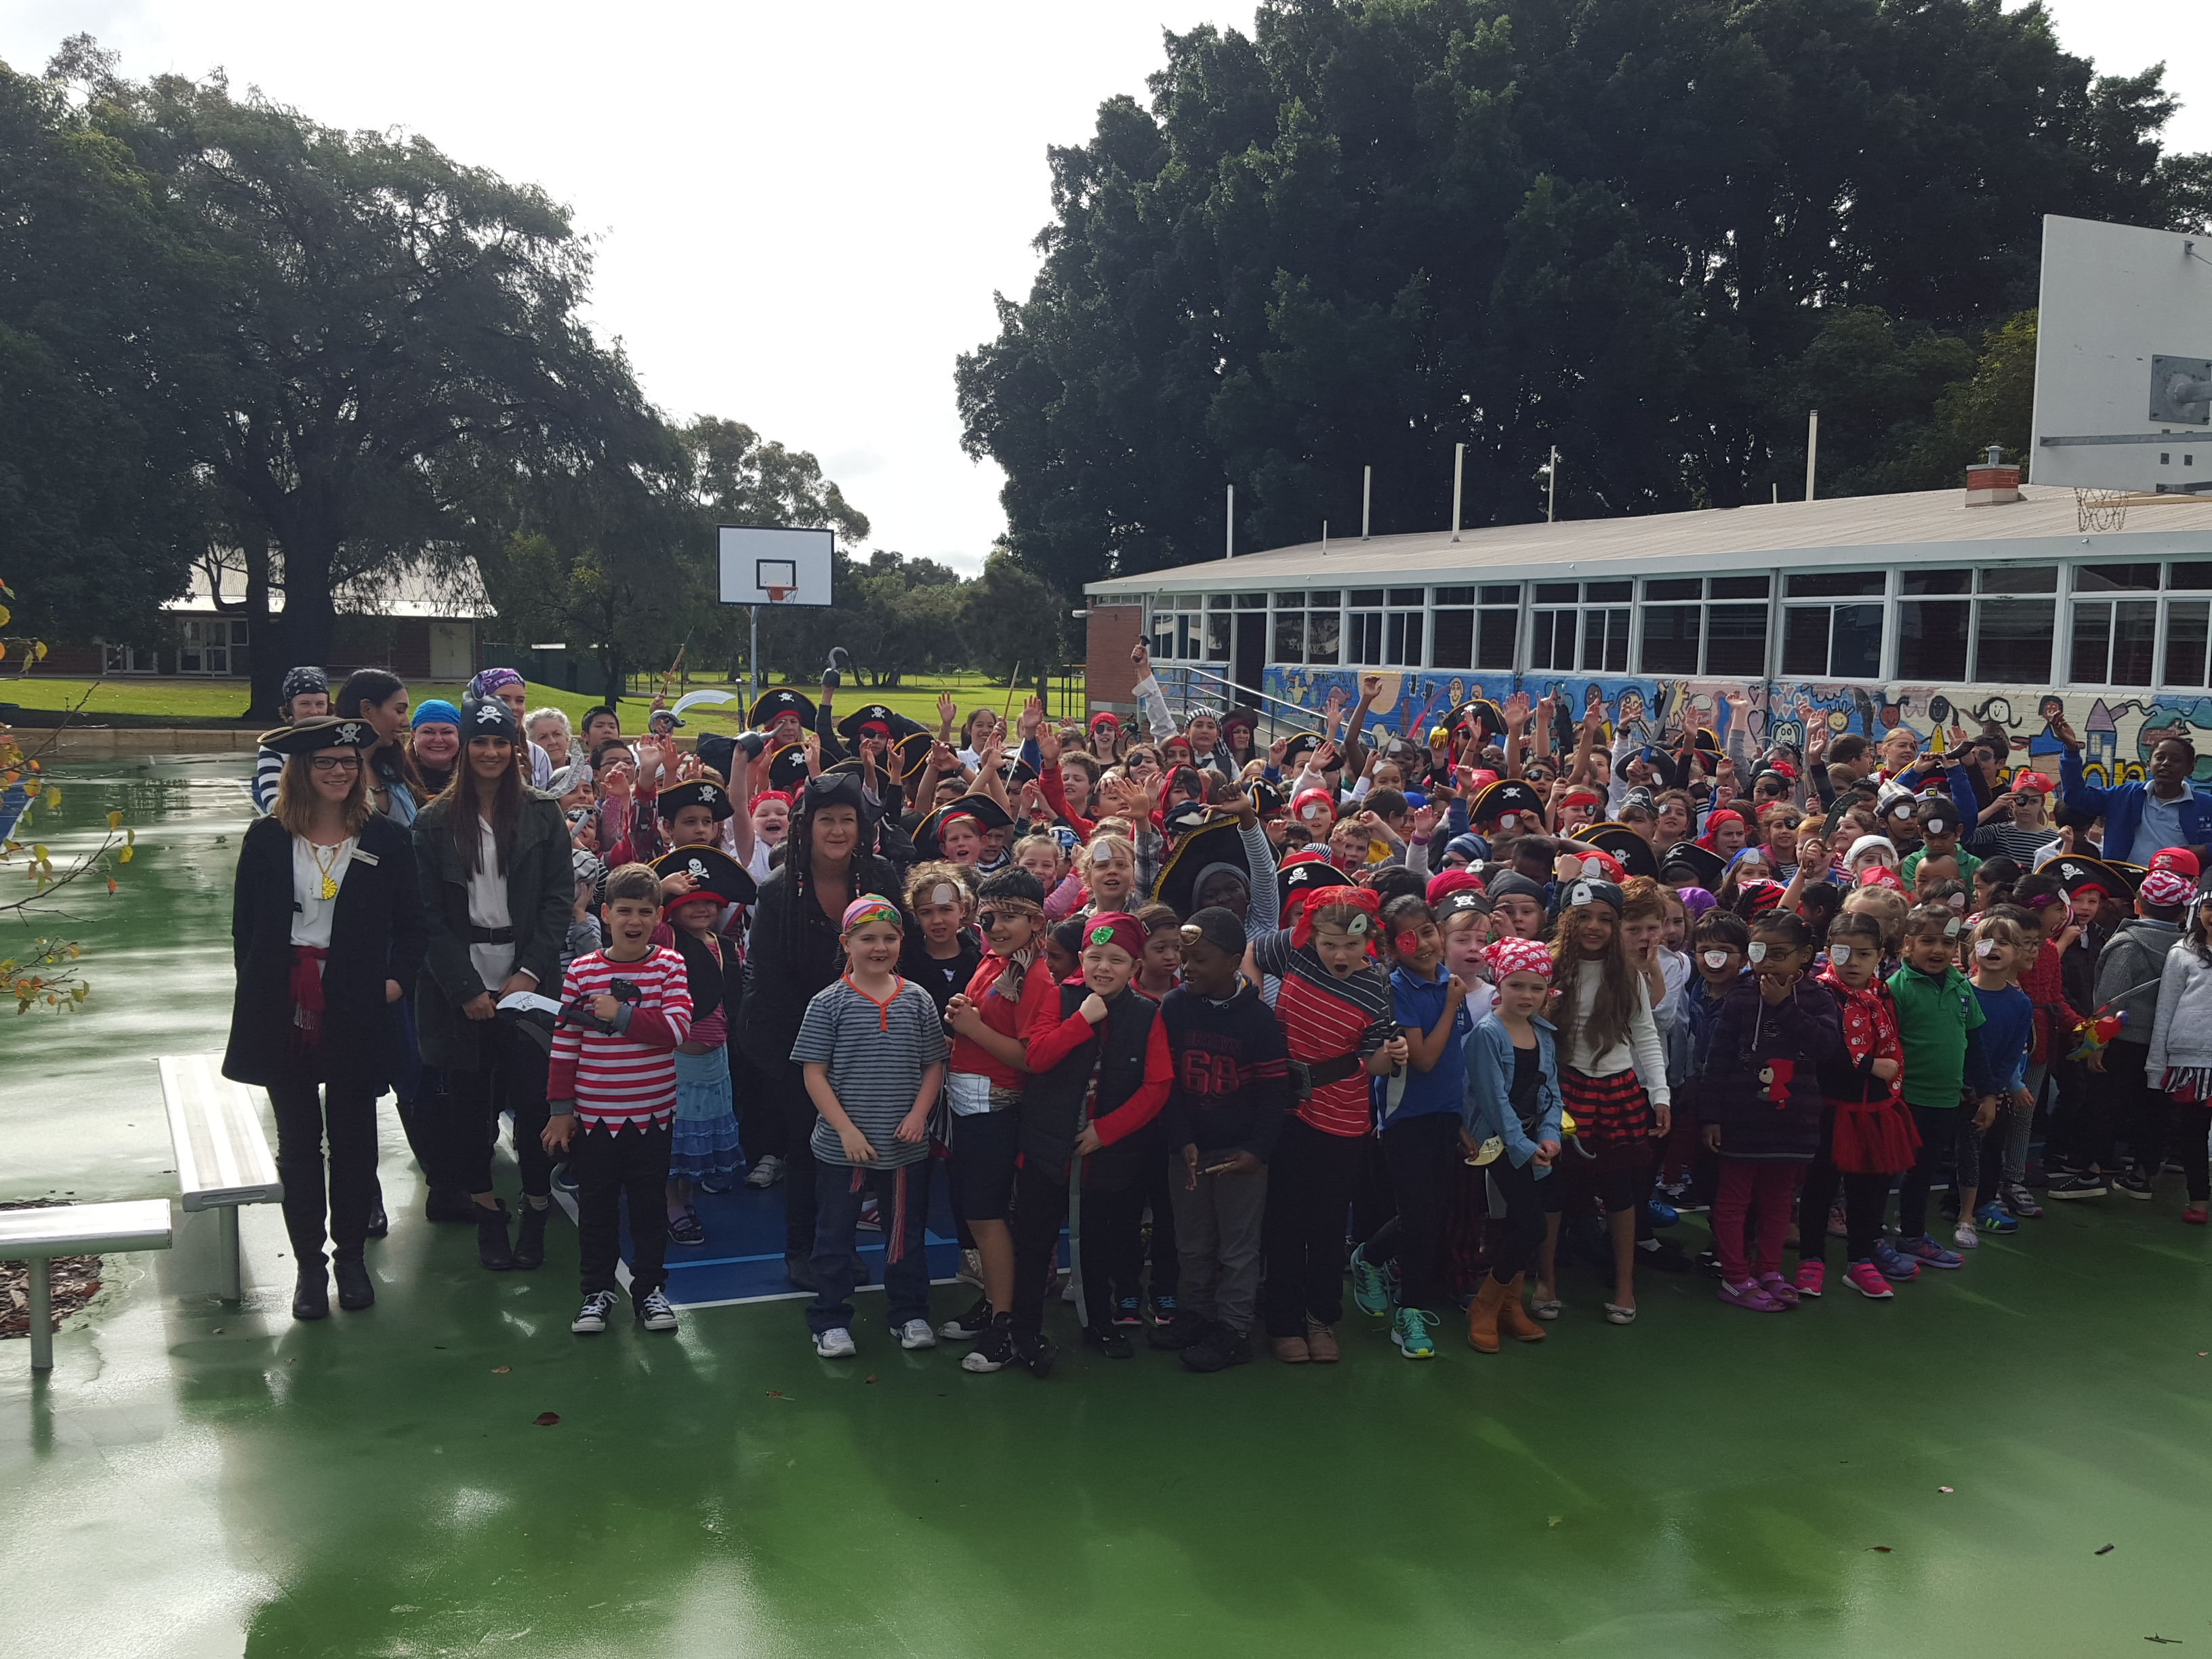 Yokine PS to unleash young pirates across school for Pirate Day Friday